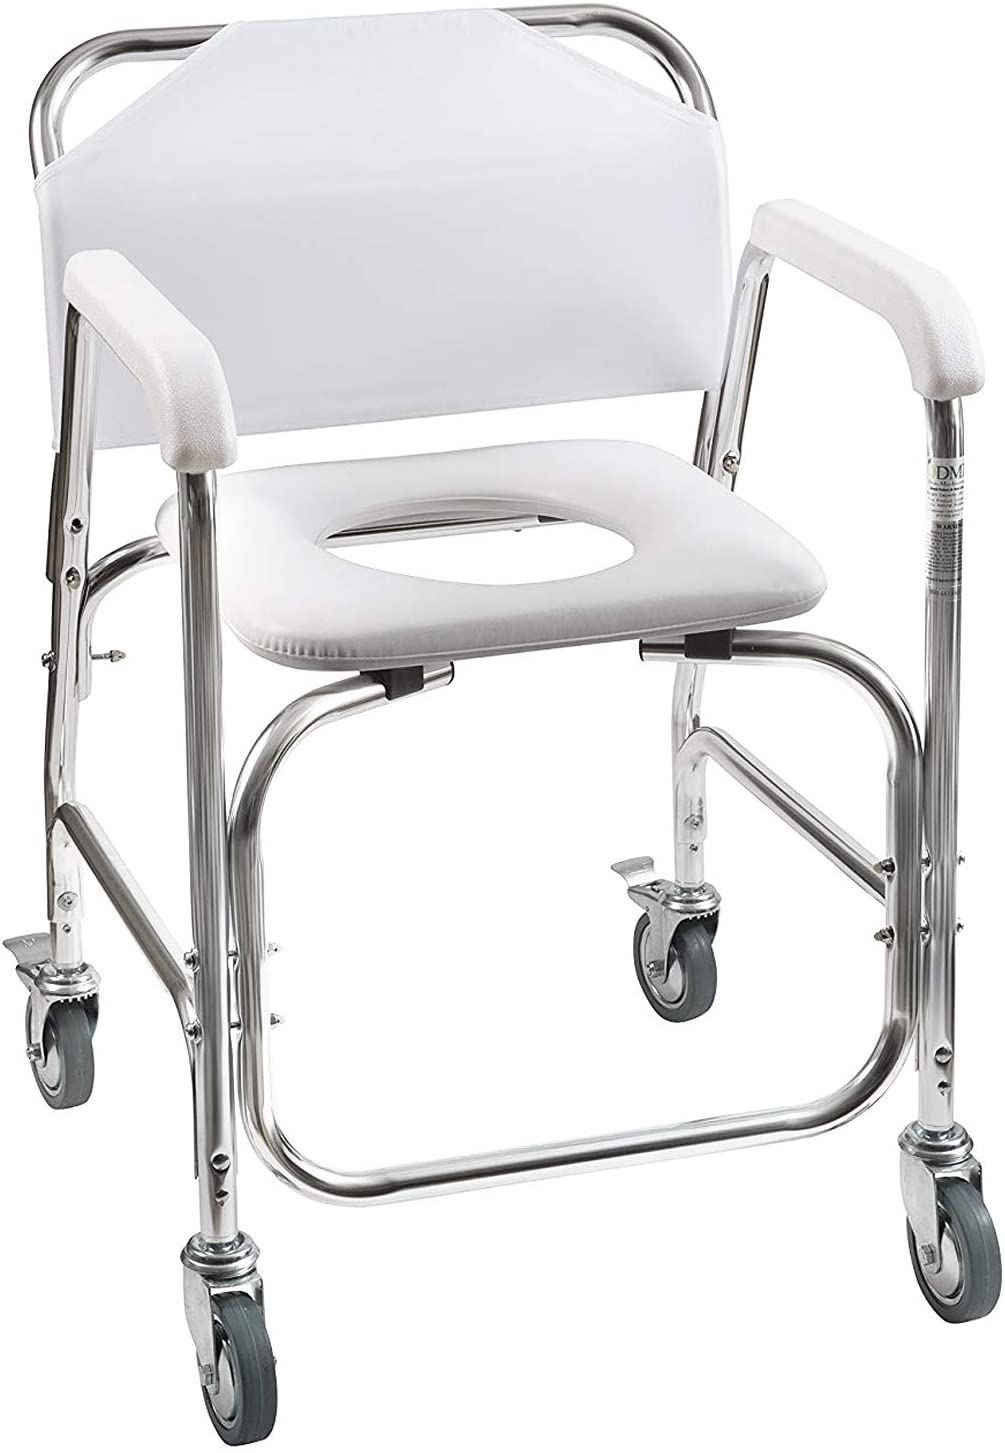 DMI Rolling Shower and Commode Transport Chair with Wheels and Padded Seat  for Handicap, Elderly, Injured and Disabled, 5 lb Weight Capacity